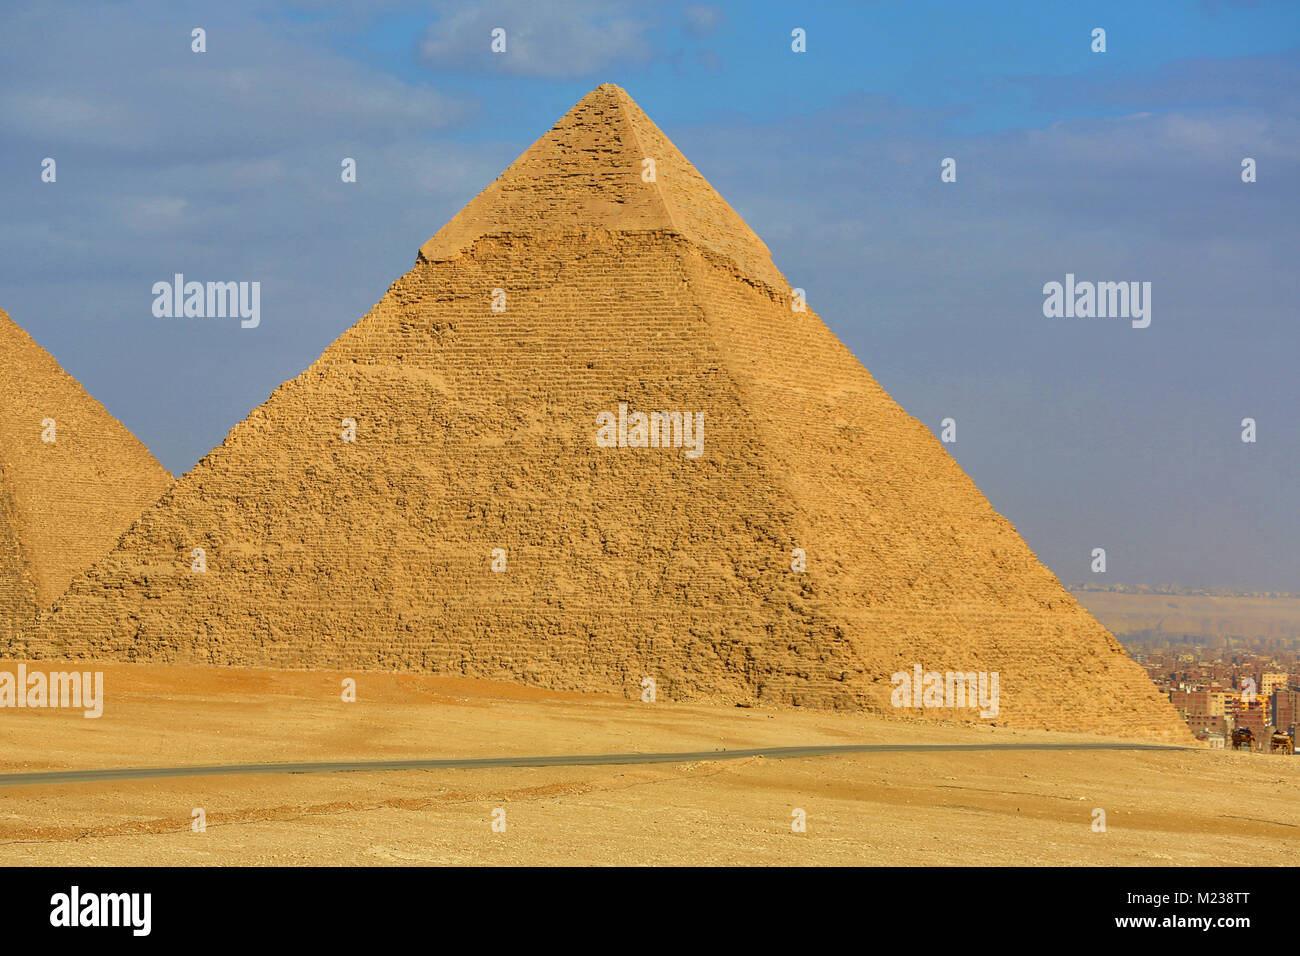 The Pyramid of Khafre (or Chephren) on the Giza Plateau, Cairo, Egypt - Stock Image